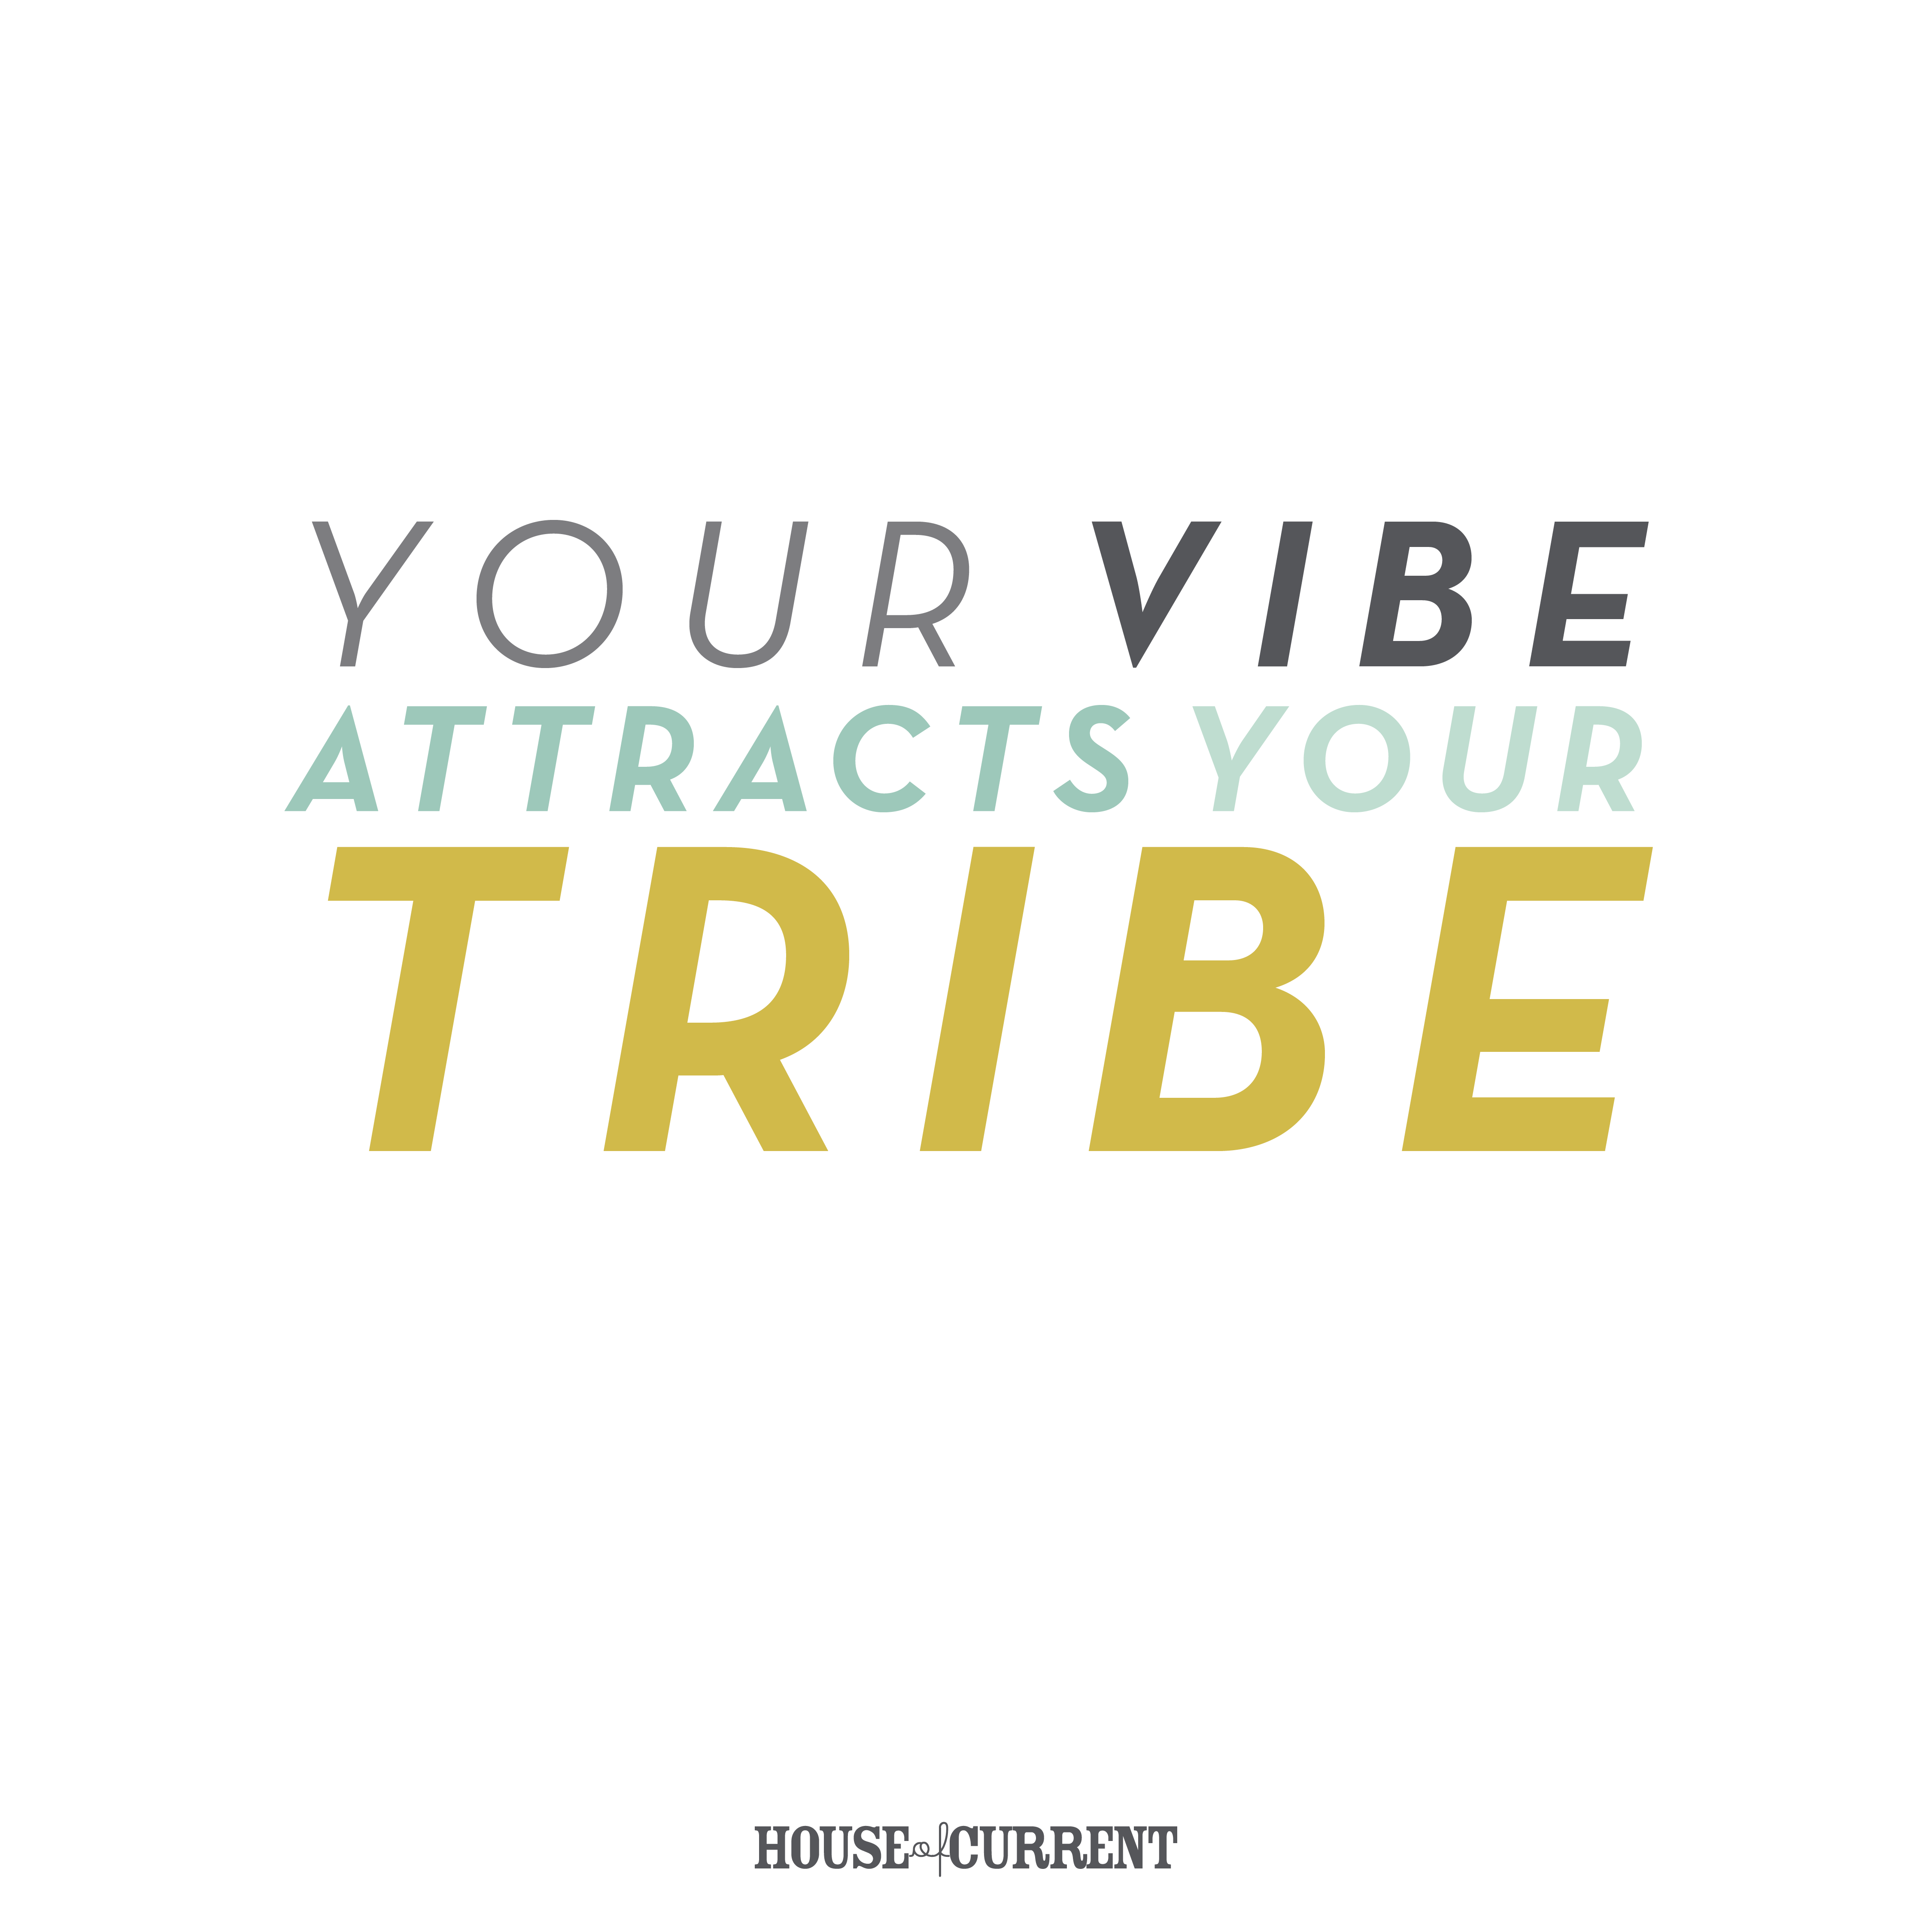 Quotes About Houses Your Vibe Attracts Your Tribe Motivational Quote  House Of